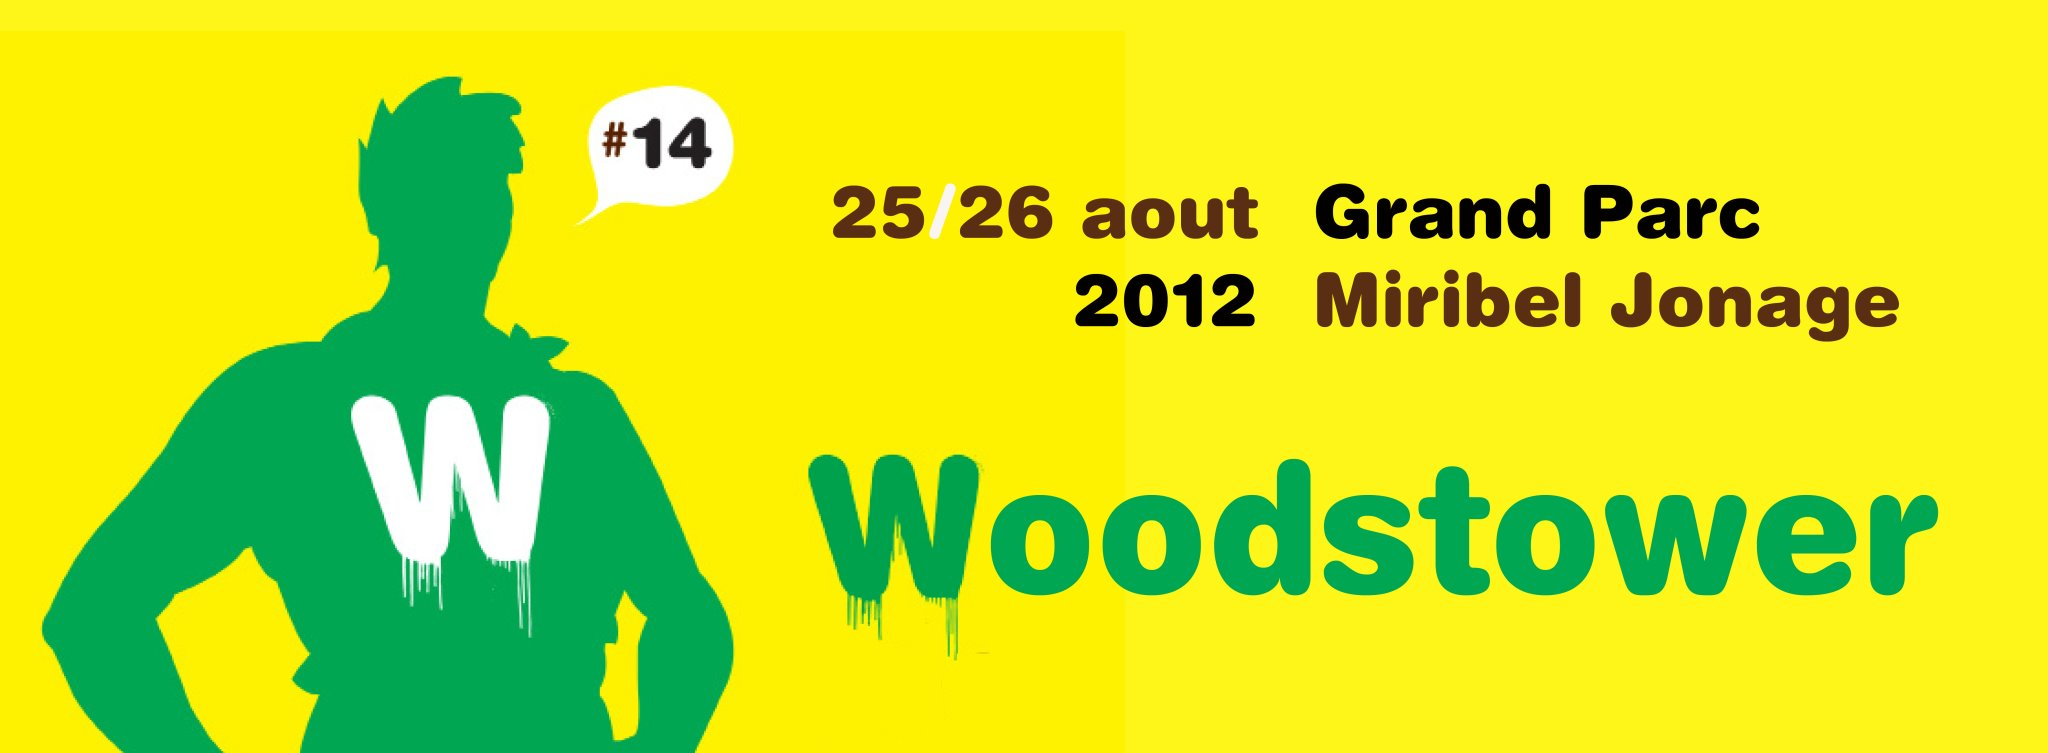 woodstower 2012